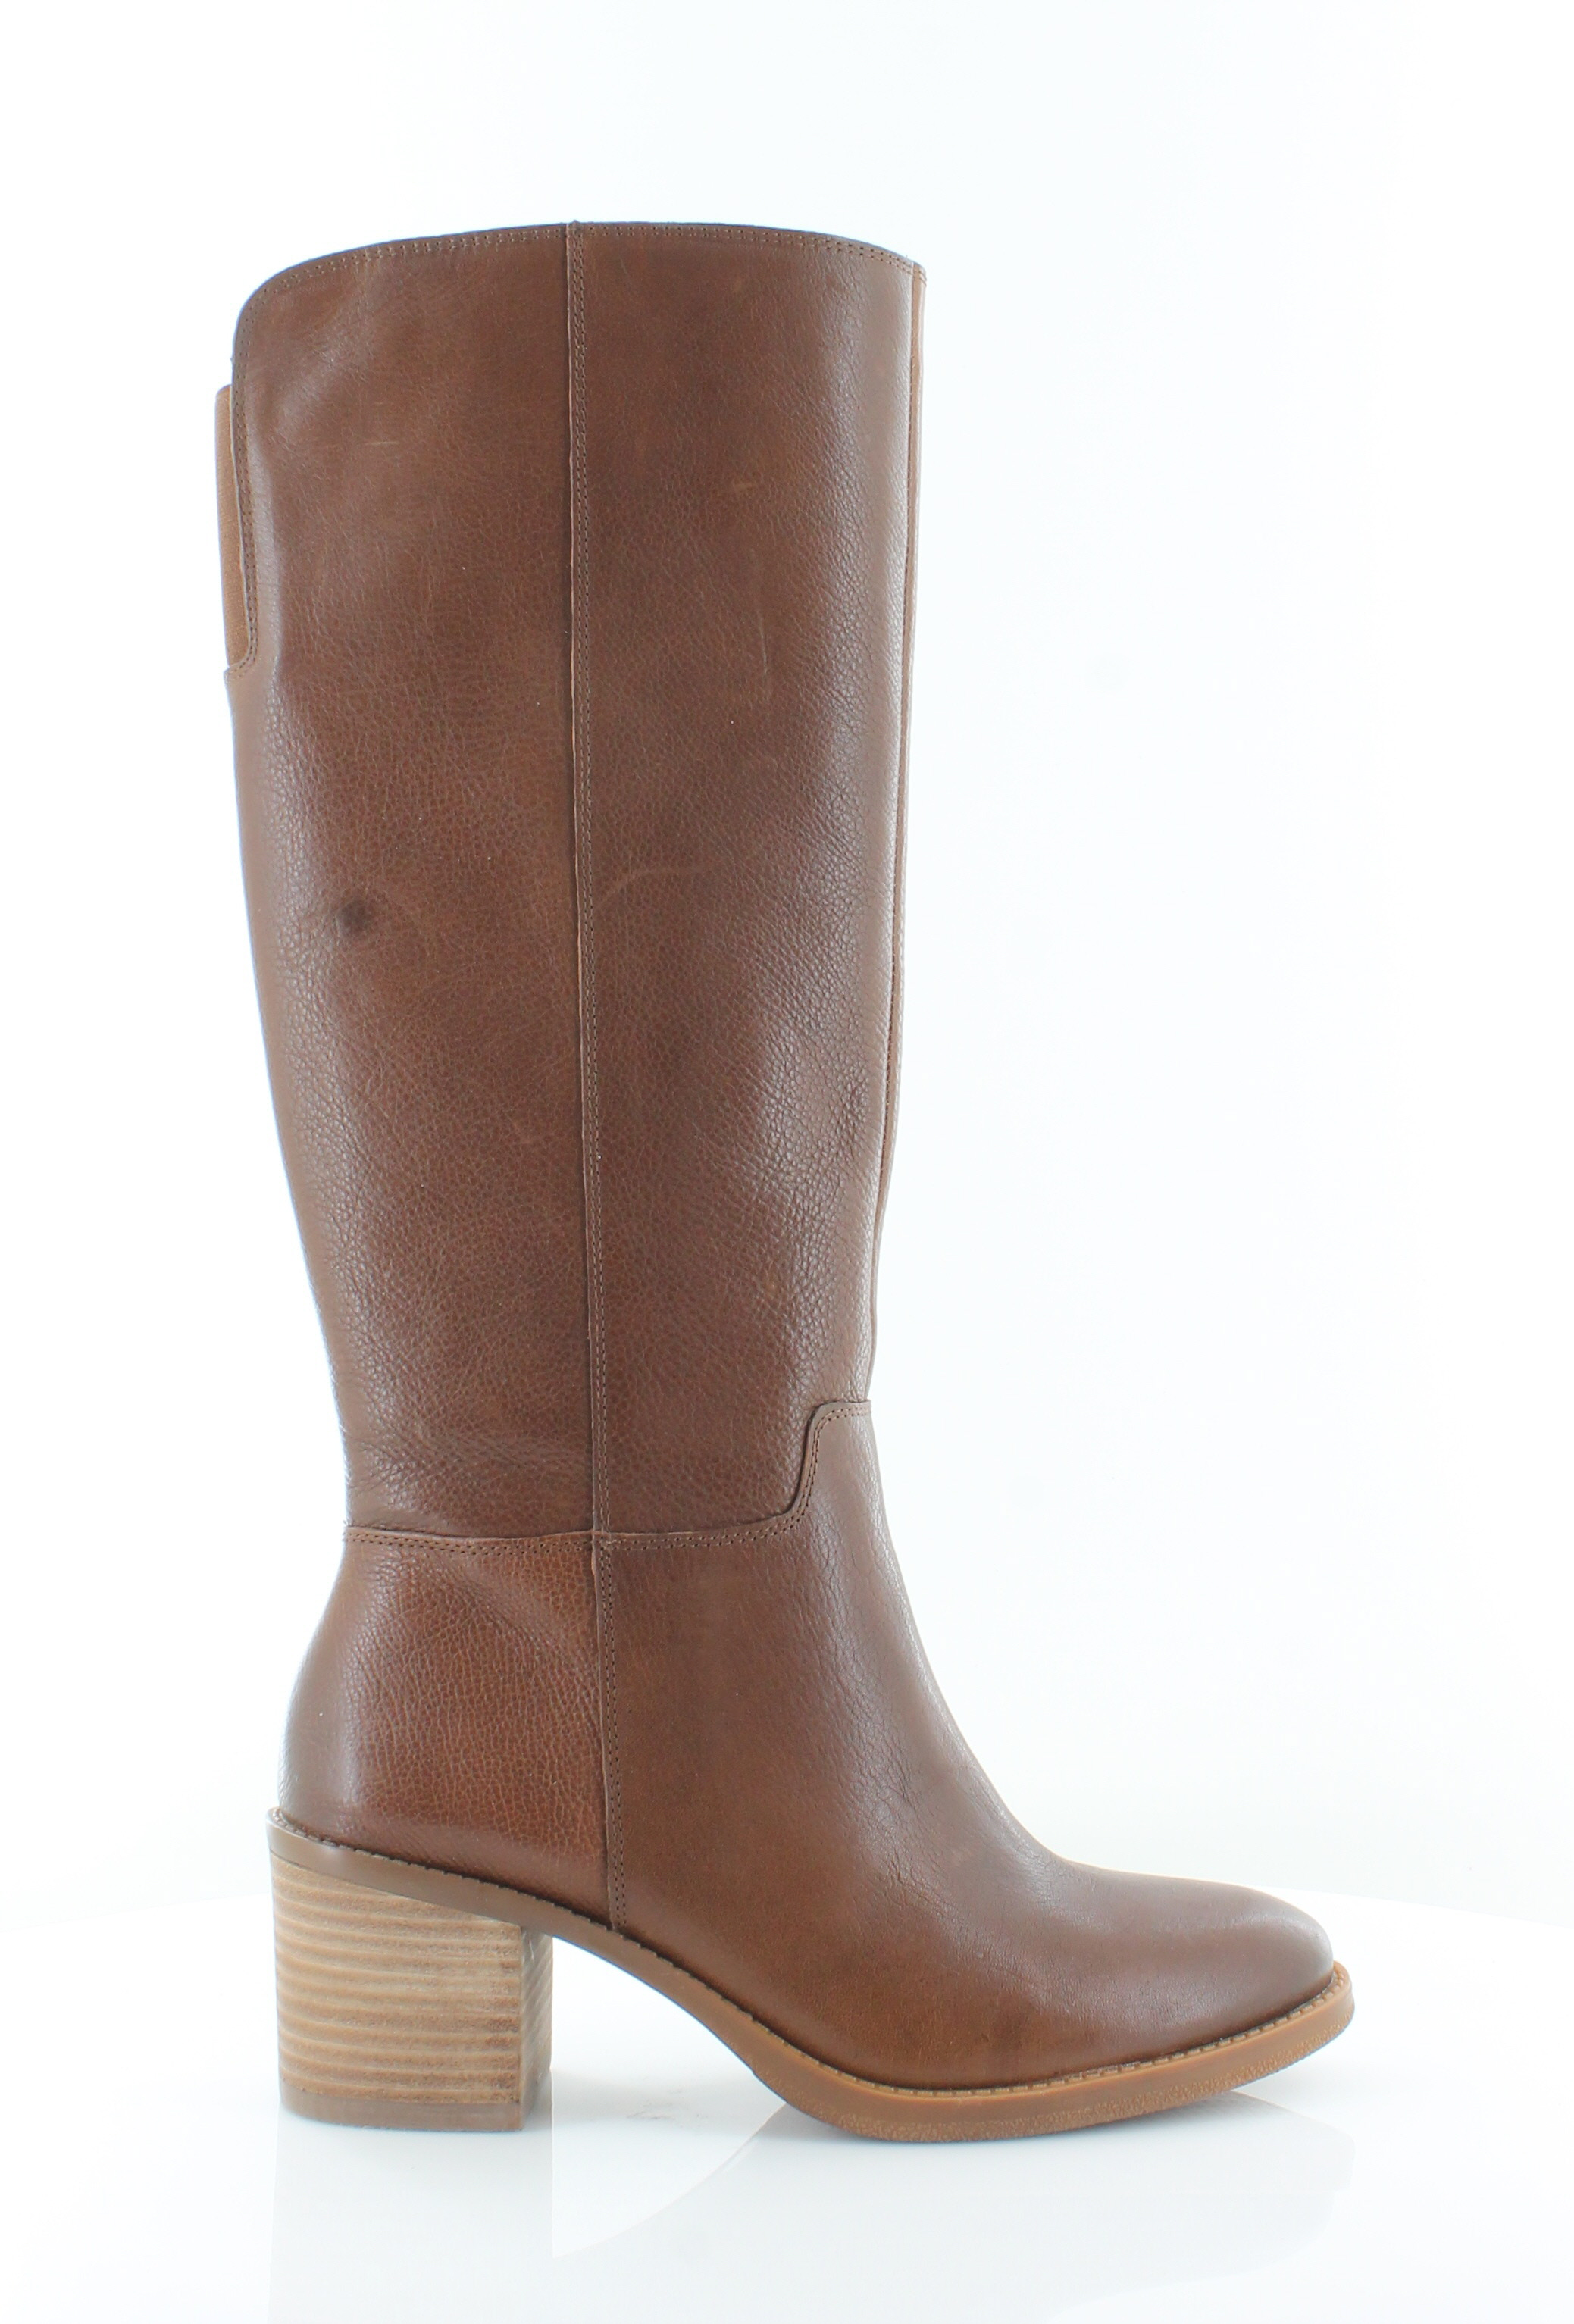 Lucky Brand Ritten Brown Womens Shoes Size 9.5 M Boots MSRP $209